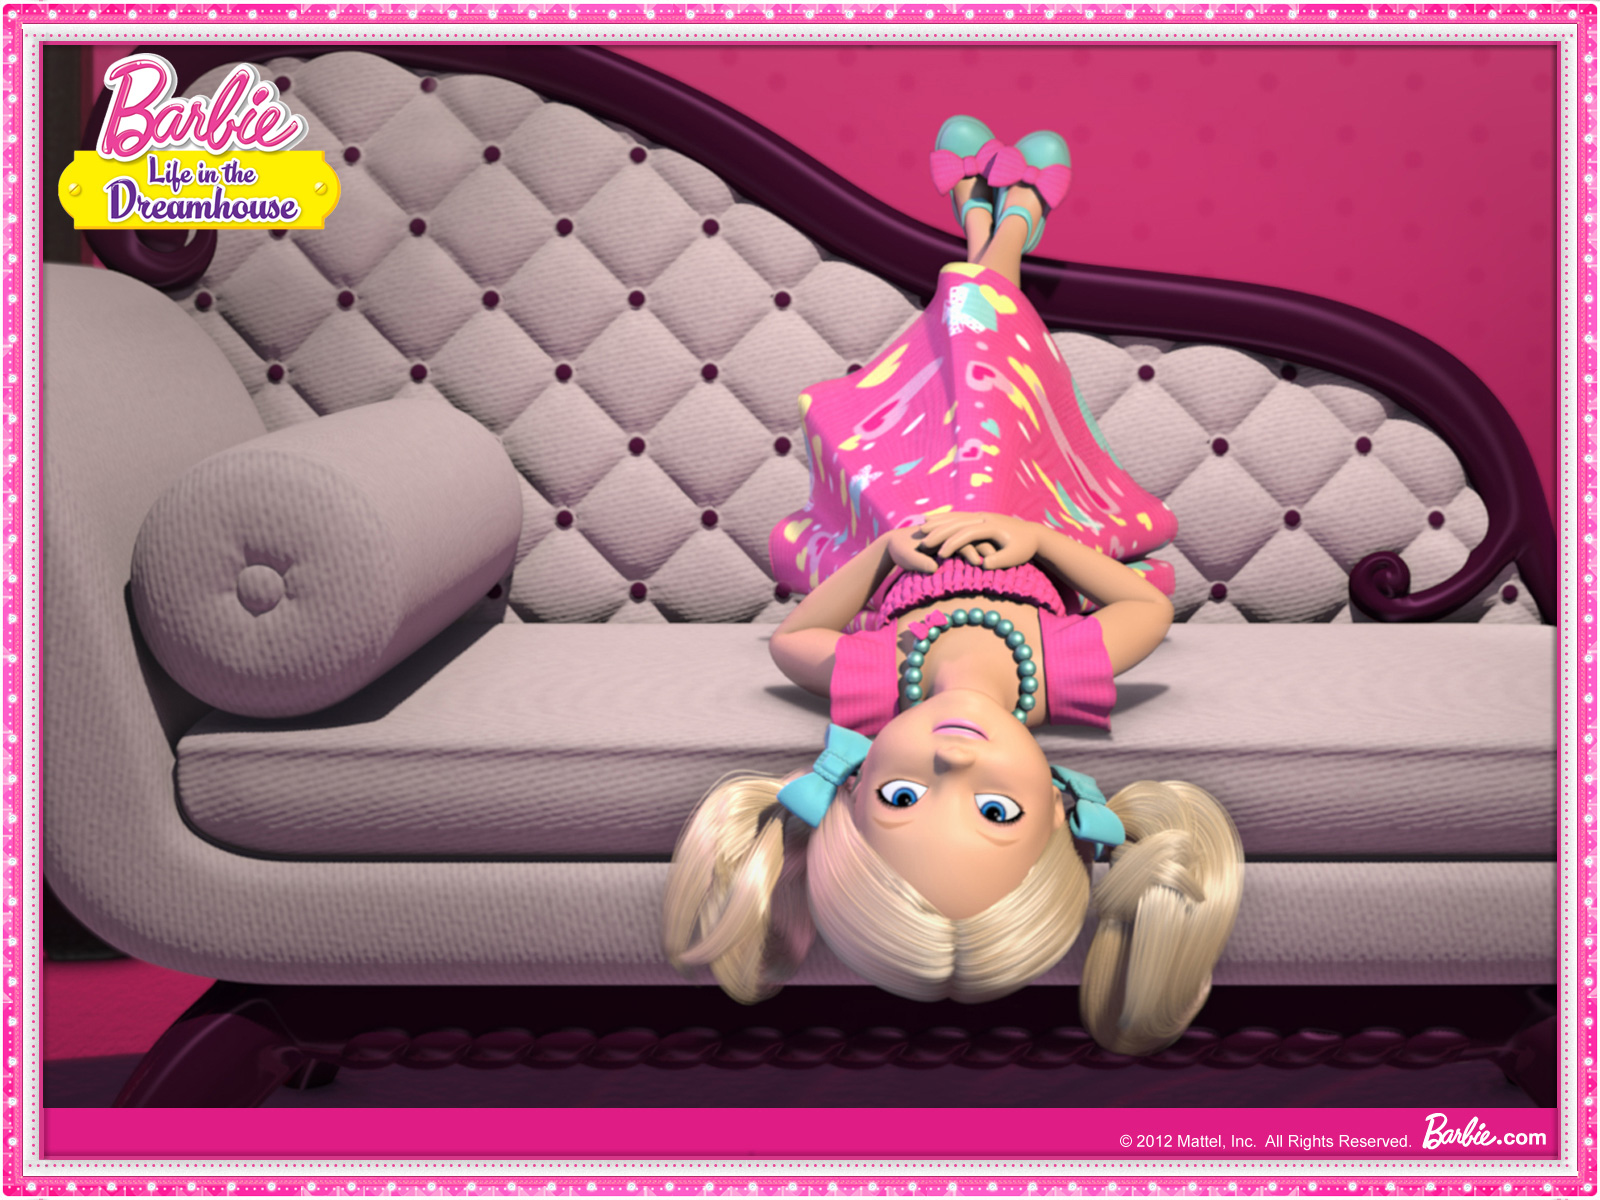 http://images5.fanpop.com/image/photos/30800000/Barbie-Life-in-the-Dreamhouse-barbie-movies-30844985-1600-1200.jpg